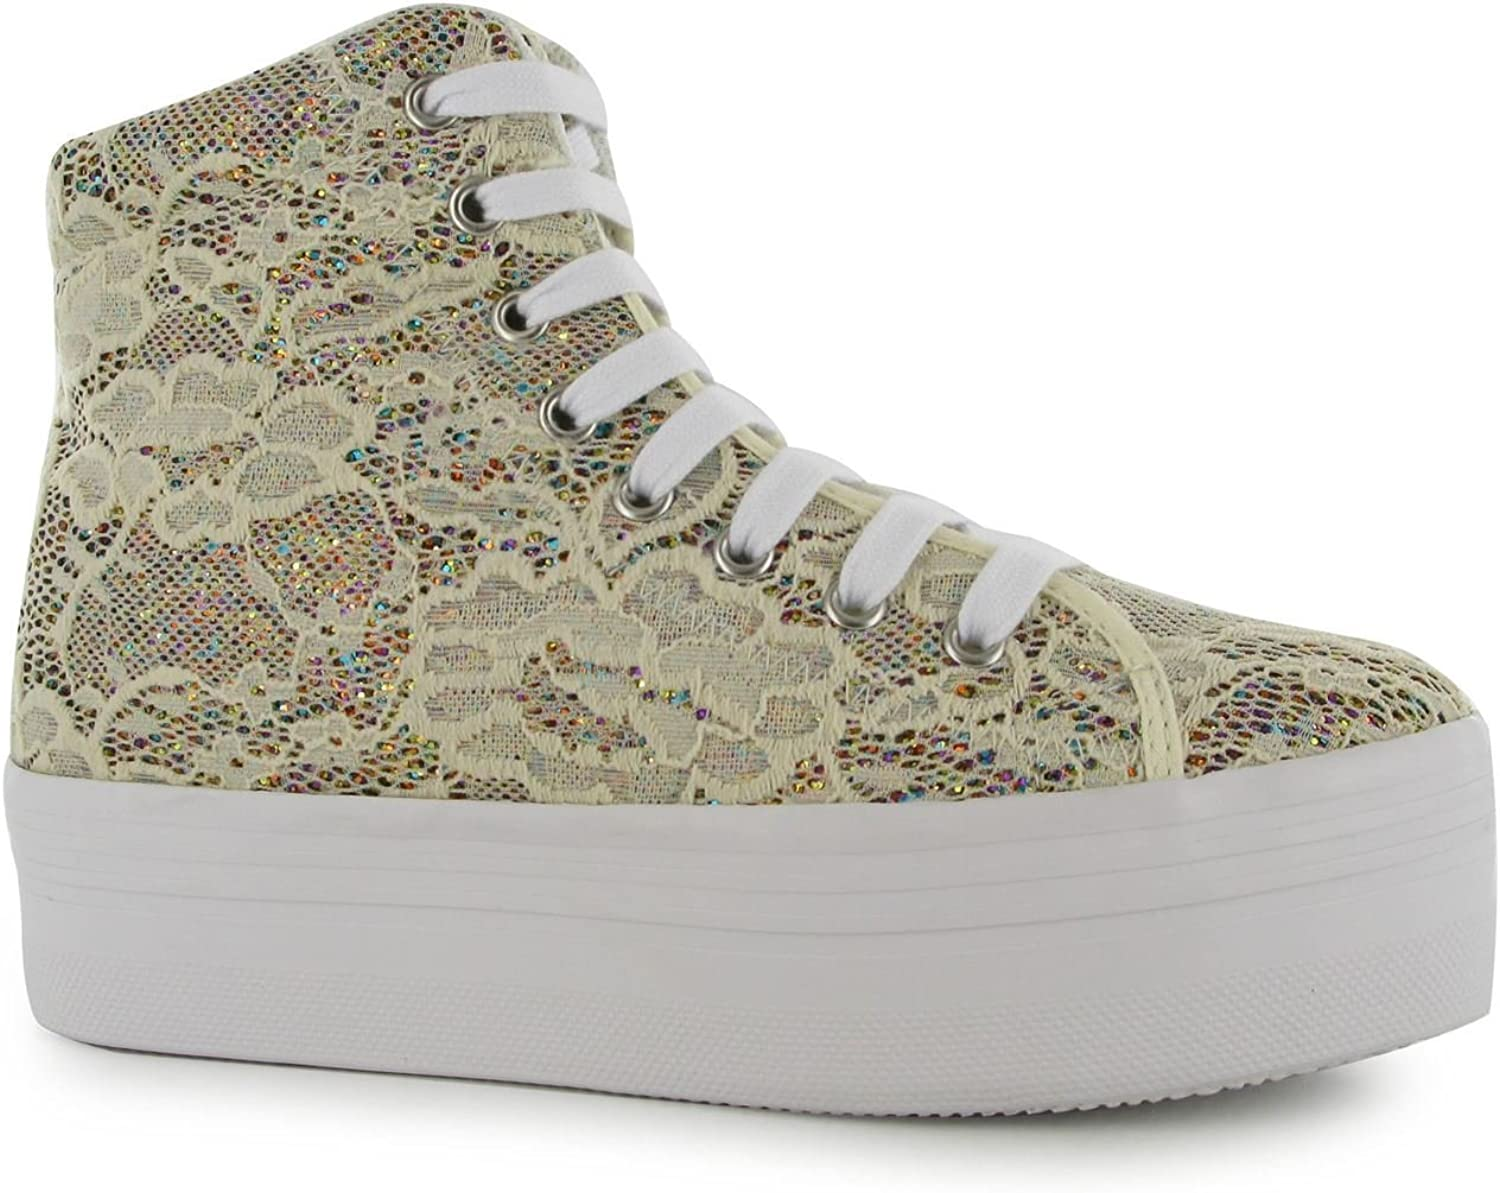 Jeffrey Campbell Play Glitzer Homg Plattform schuhe Damen Creme Trainer Turnschuhe  | Am wirtschaftlichsten